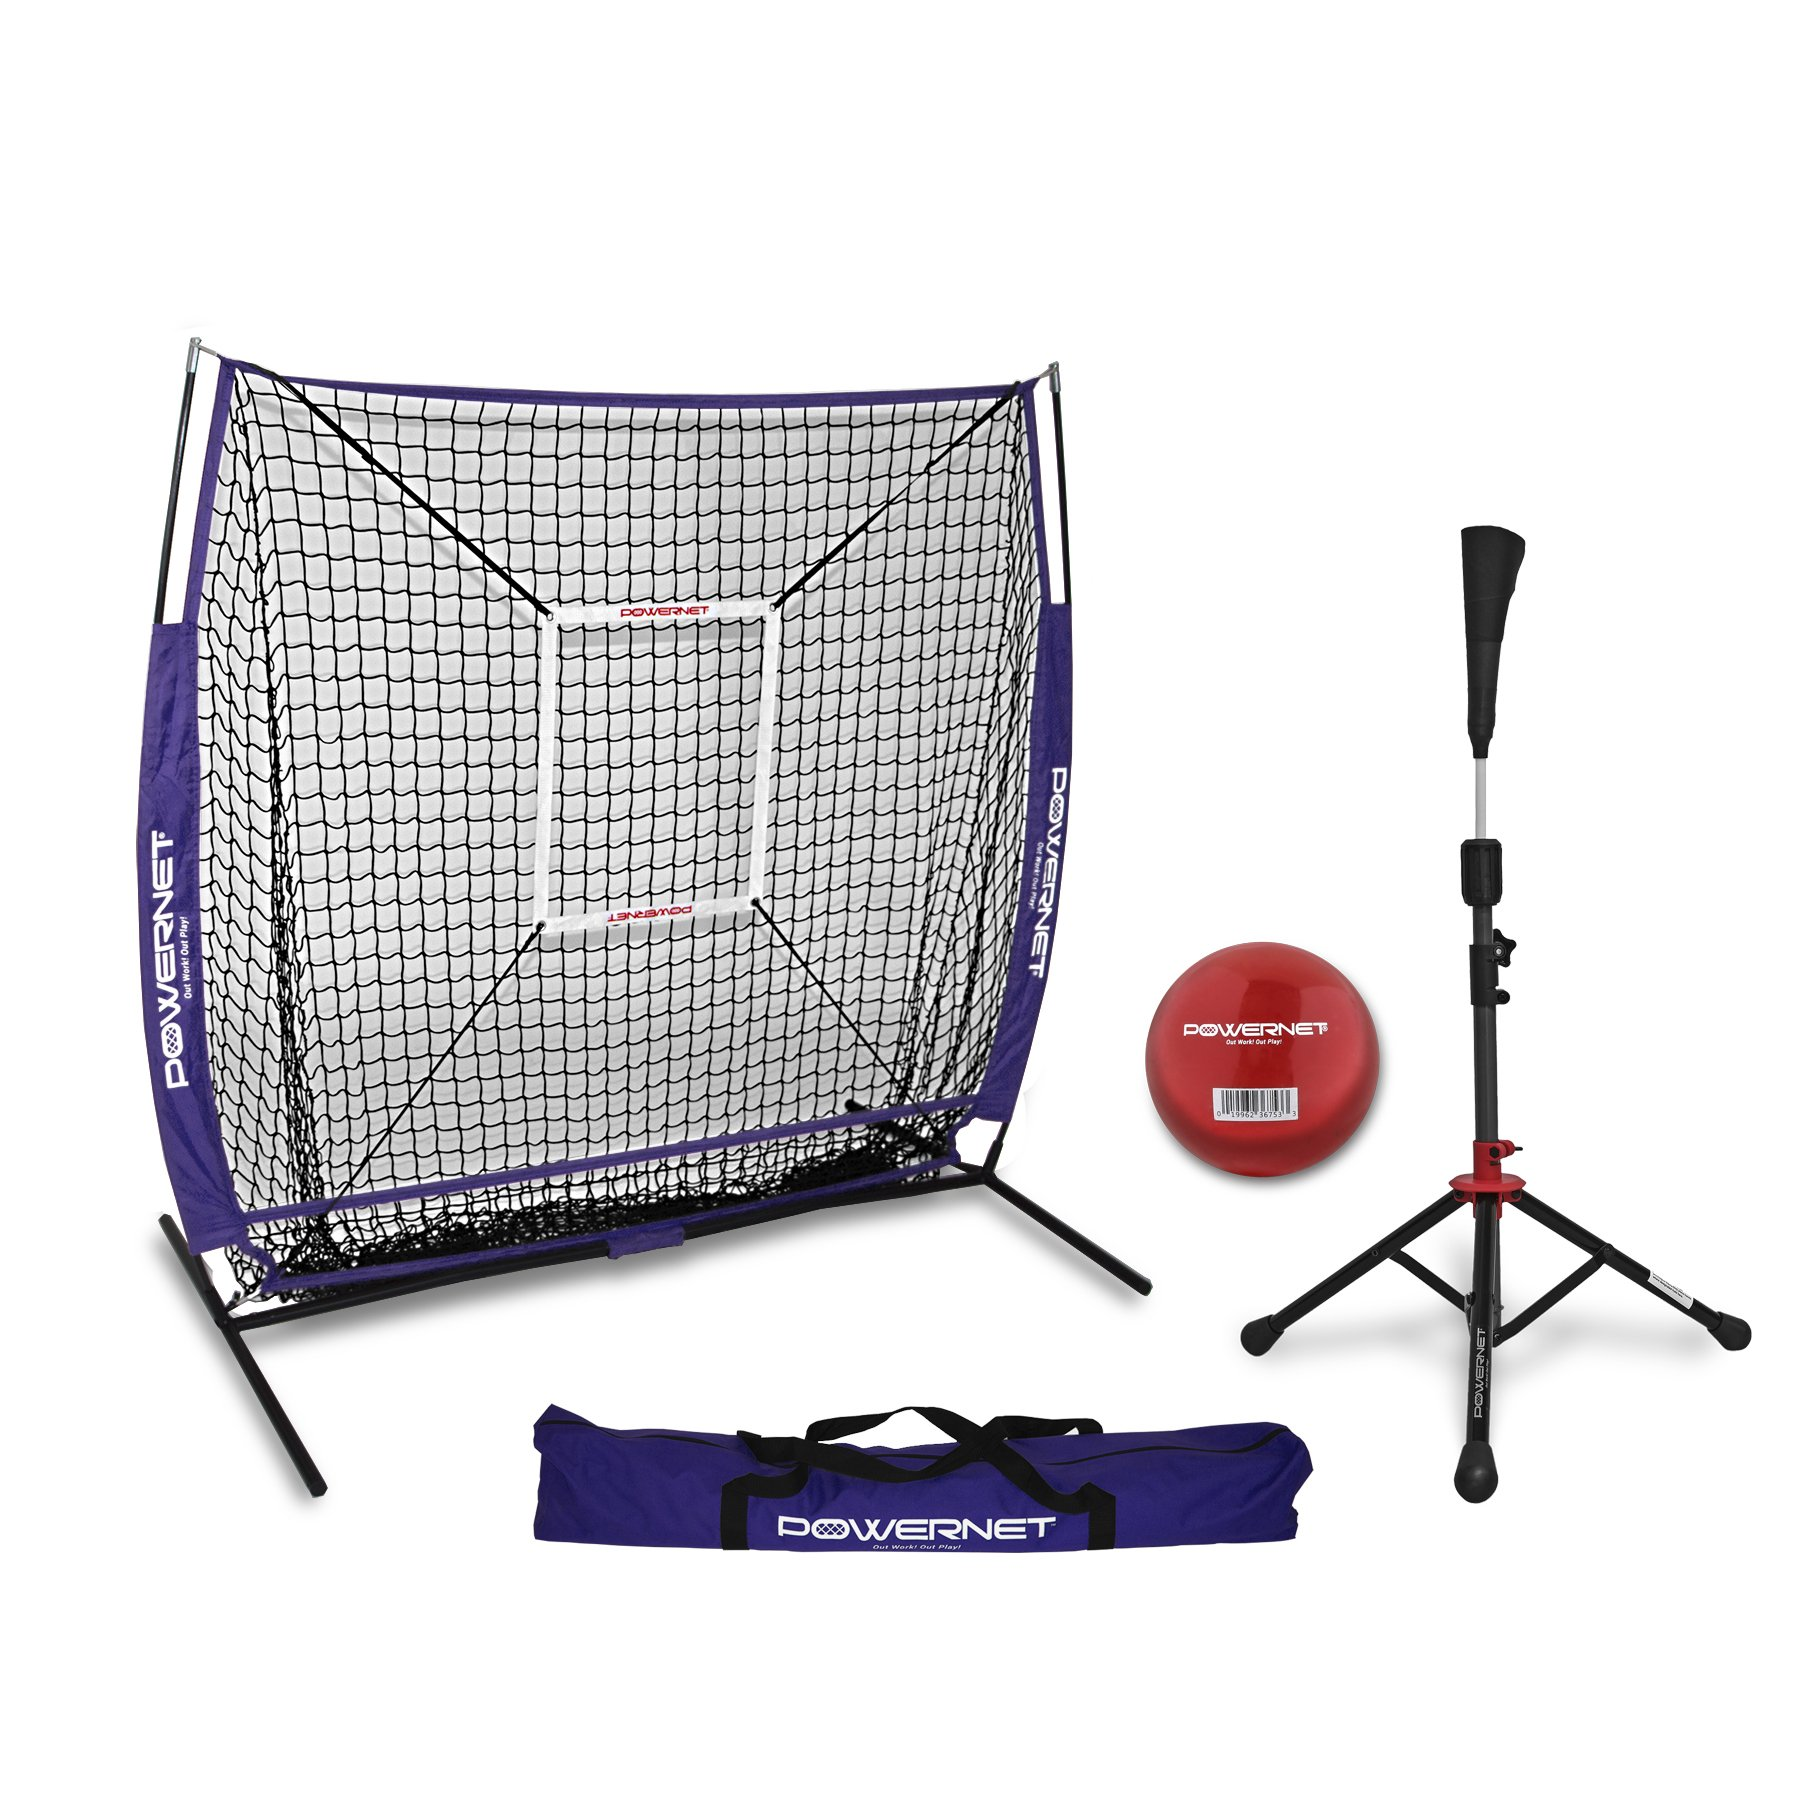 PowerNet 5x5 Practice Net + Deluxe Tee + Strike Zone + Weighted Training Ball Bundle (Purple) | Baseball Softball Pitching Batting Coaching Pack | Work on Pitch Accuracy | Build Plate Confidence